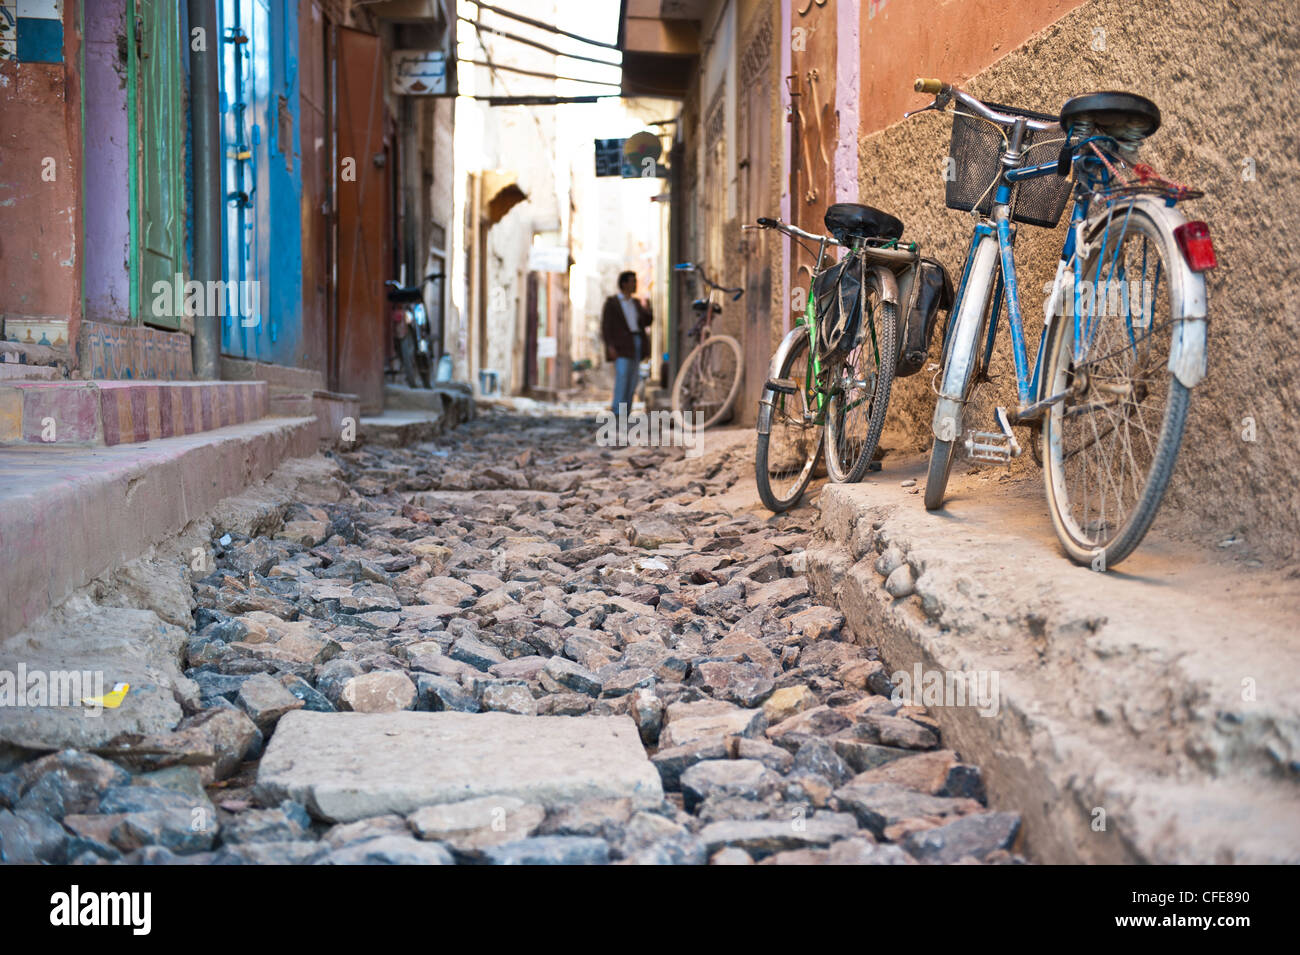 Street in bad condition, Rissani, Morocco - Stock Image